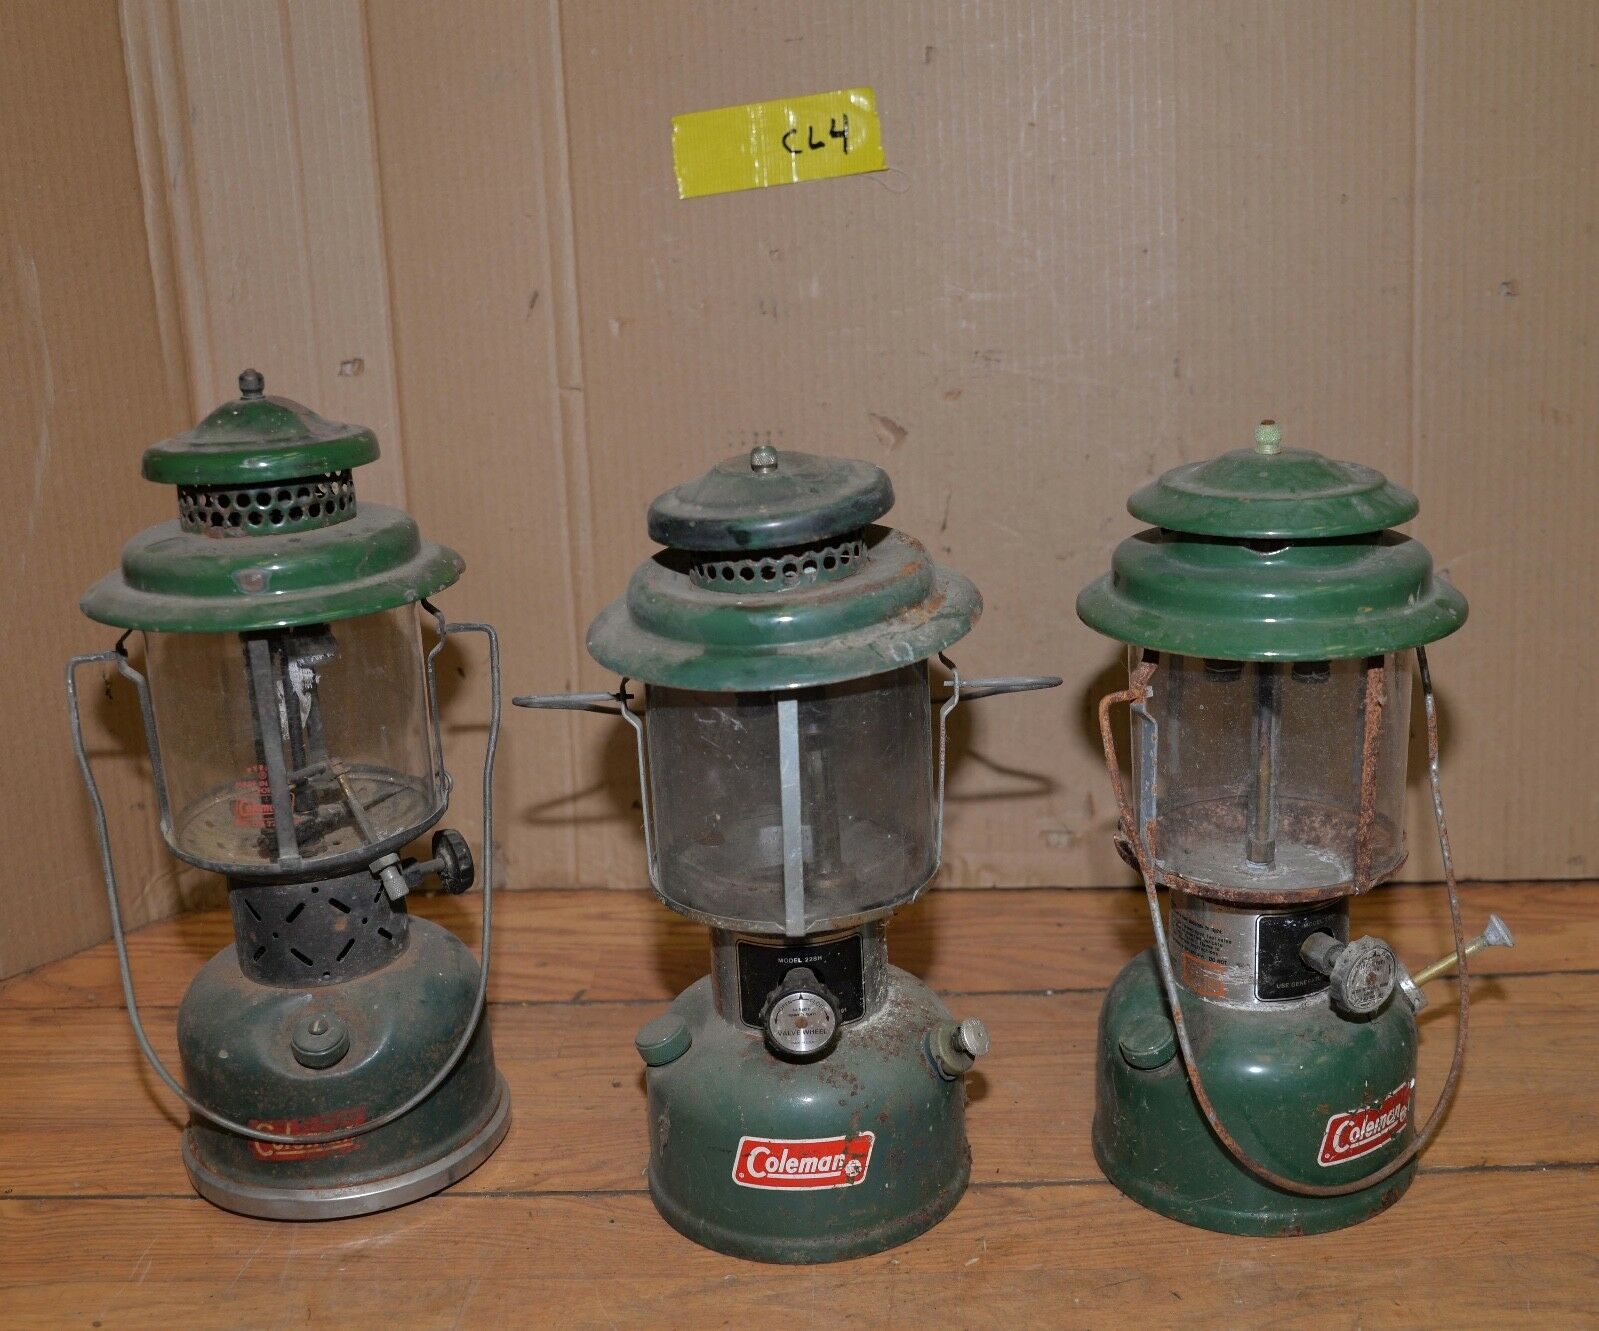 3 Coleman lanterns vintage  camping tool collectible gas light parts repair CL4  low 40% price